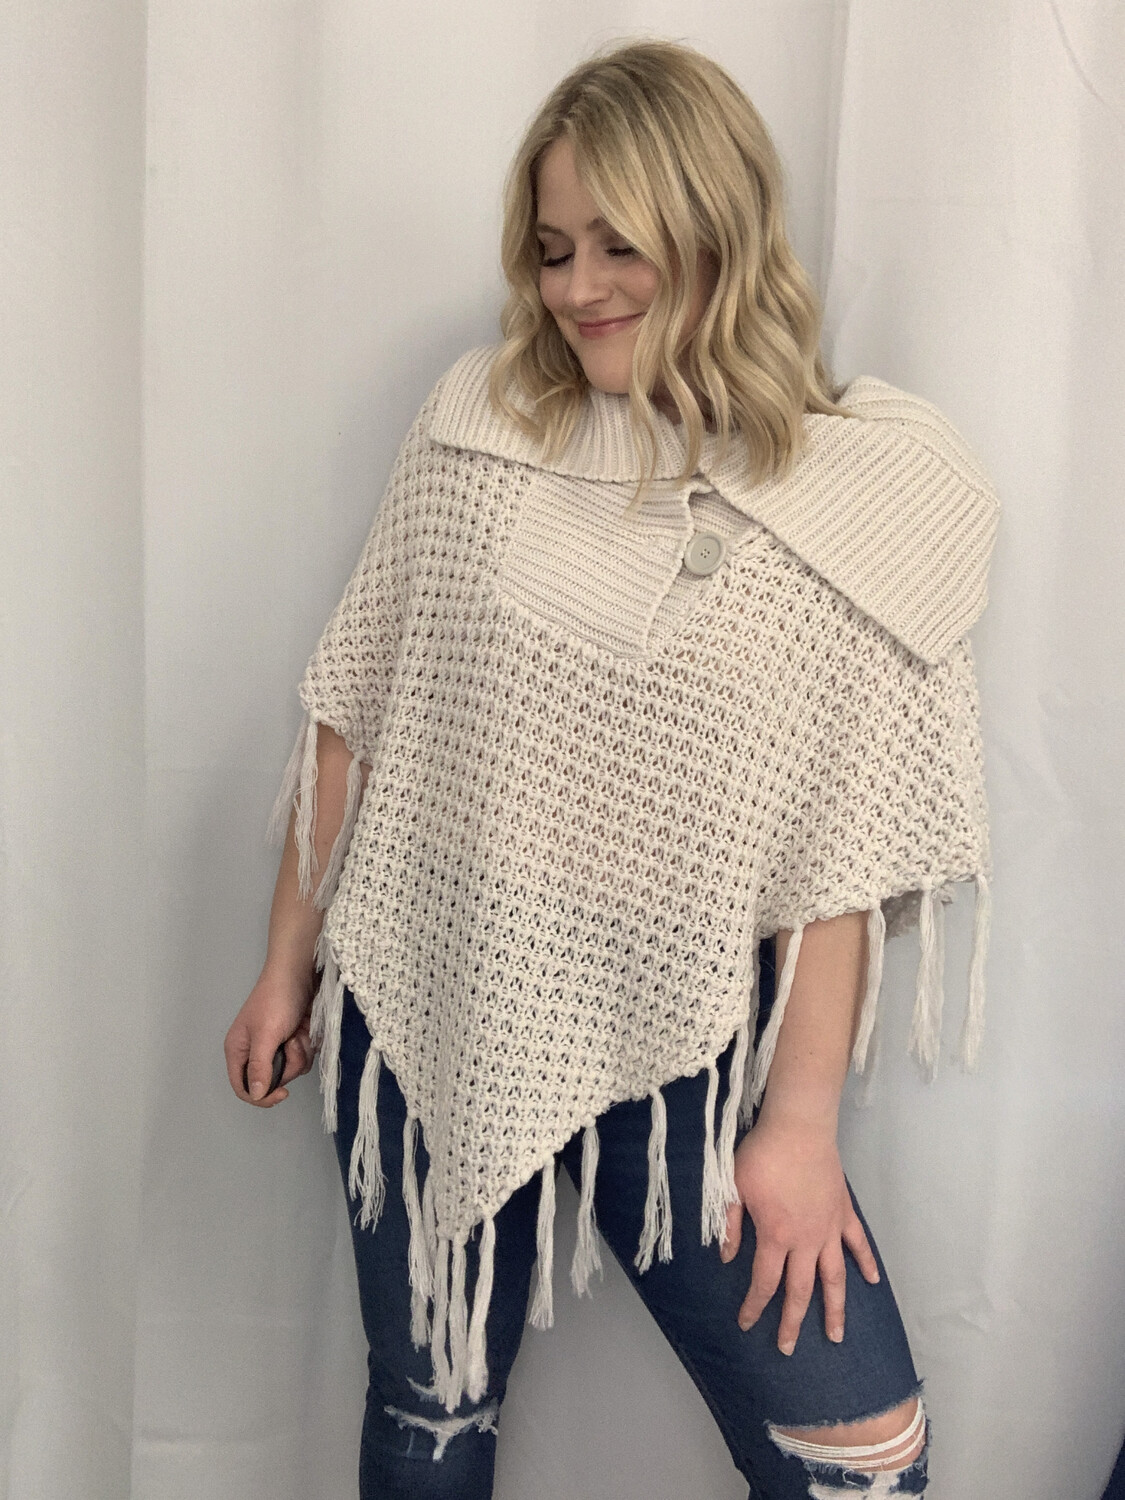 Say What Cream Knit Poncho with Fringe - O/S